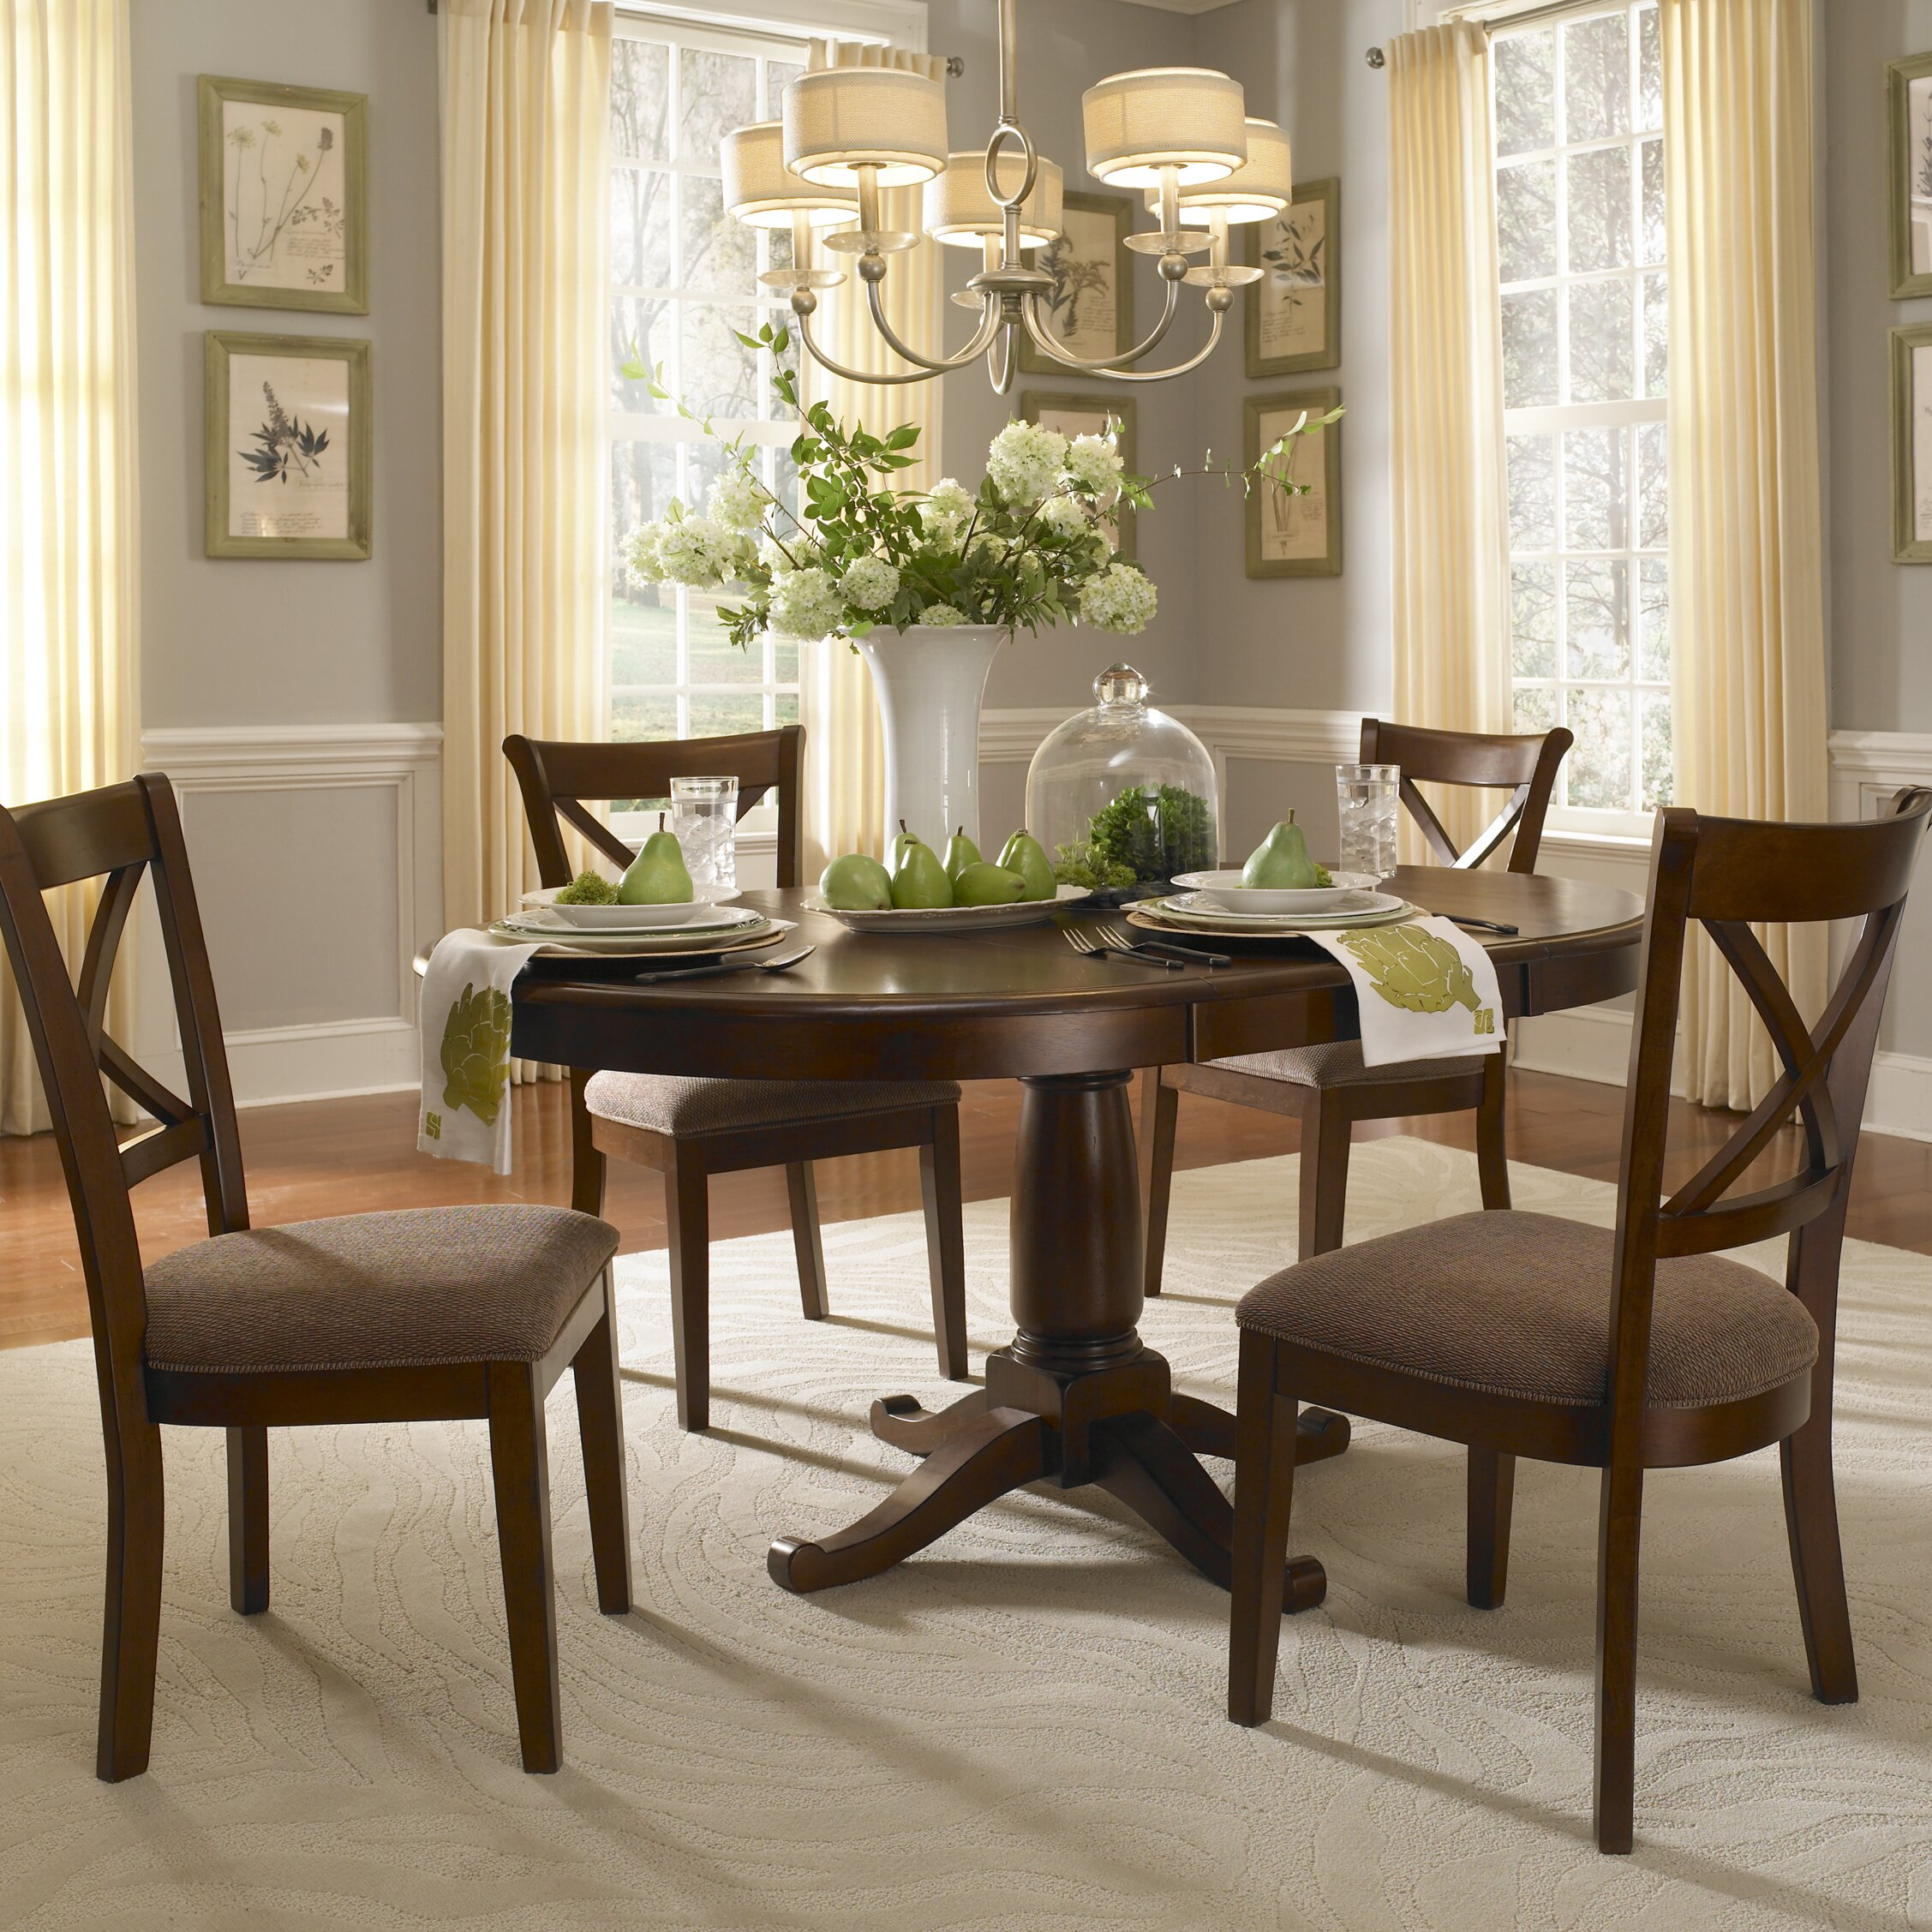 Dining Room Table Sets: A-America Desoto Extendable Dining Table & Reviews